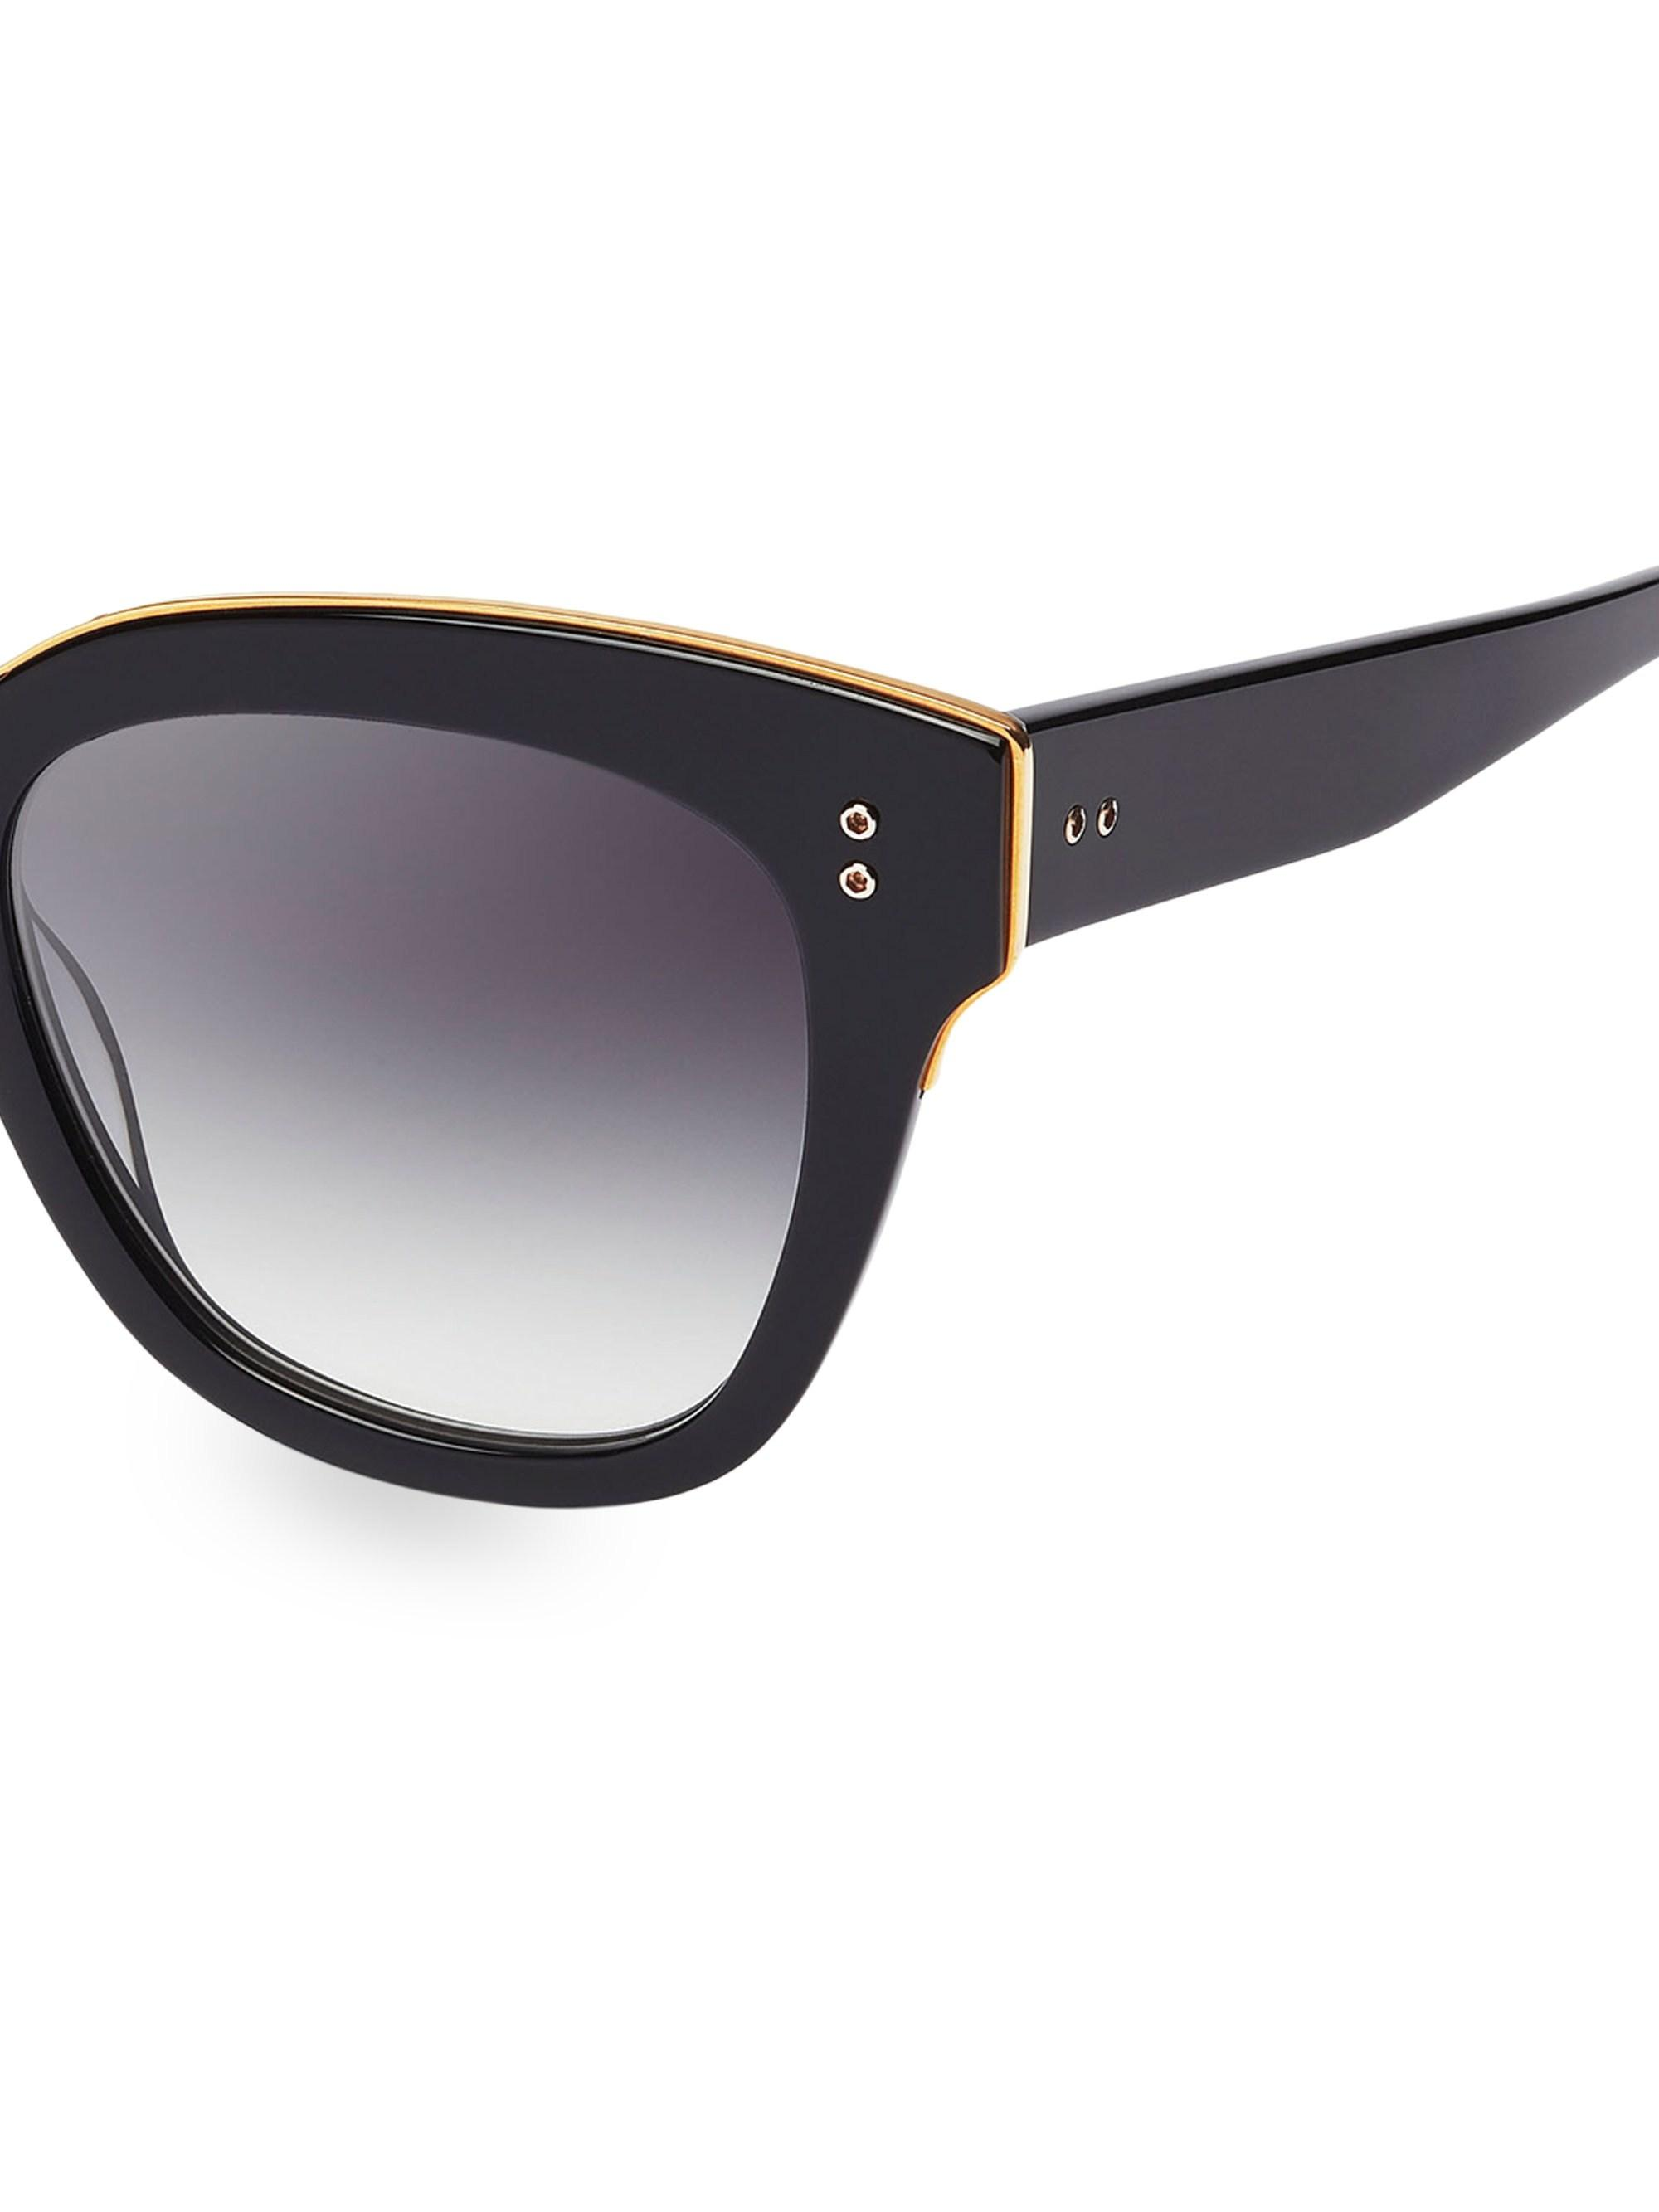 39a738b2236 Dita Eyewear - Black Day Tripper 55mm Oversized Sunglasses - Lyst. View  fullscreen